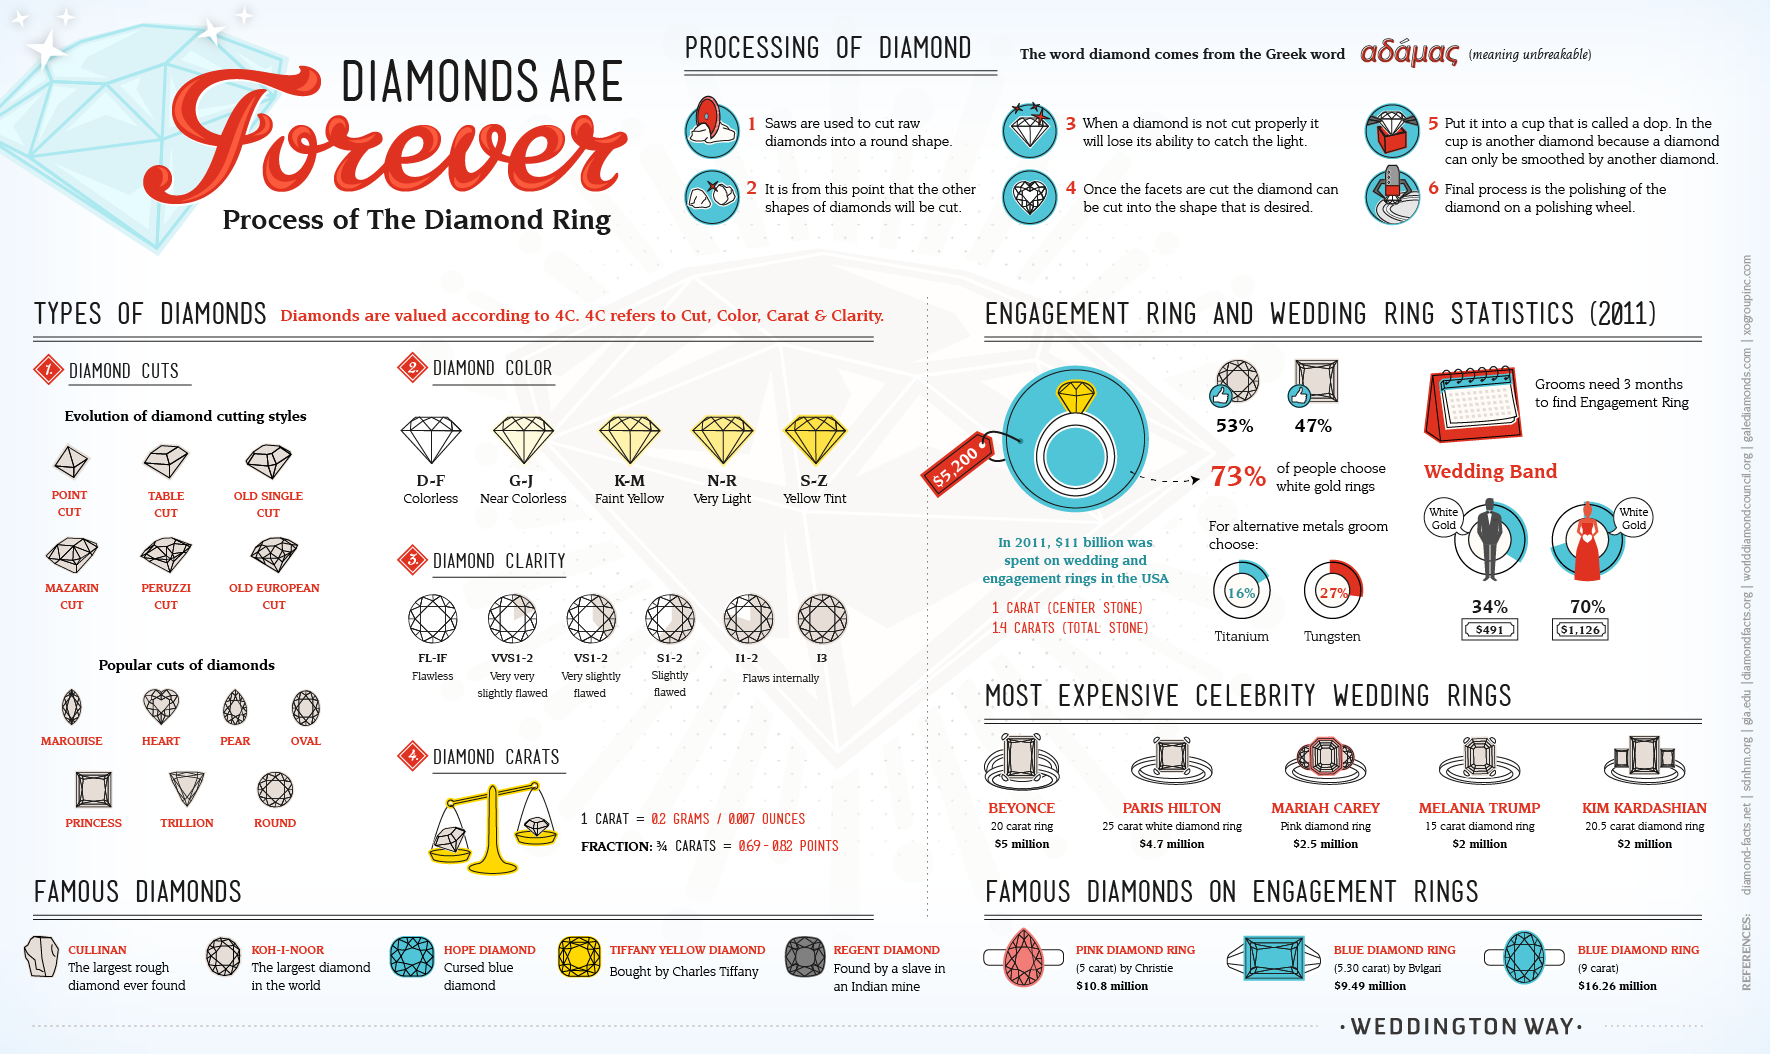 A DIAMOND IS FOREVER: THE ULTIMATE GUIDE TO THE DIAMOND RING